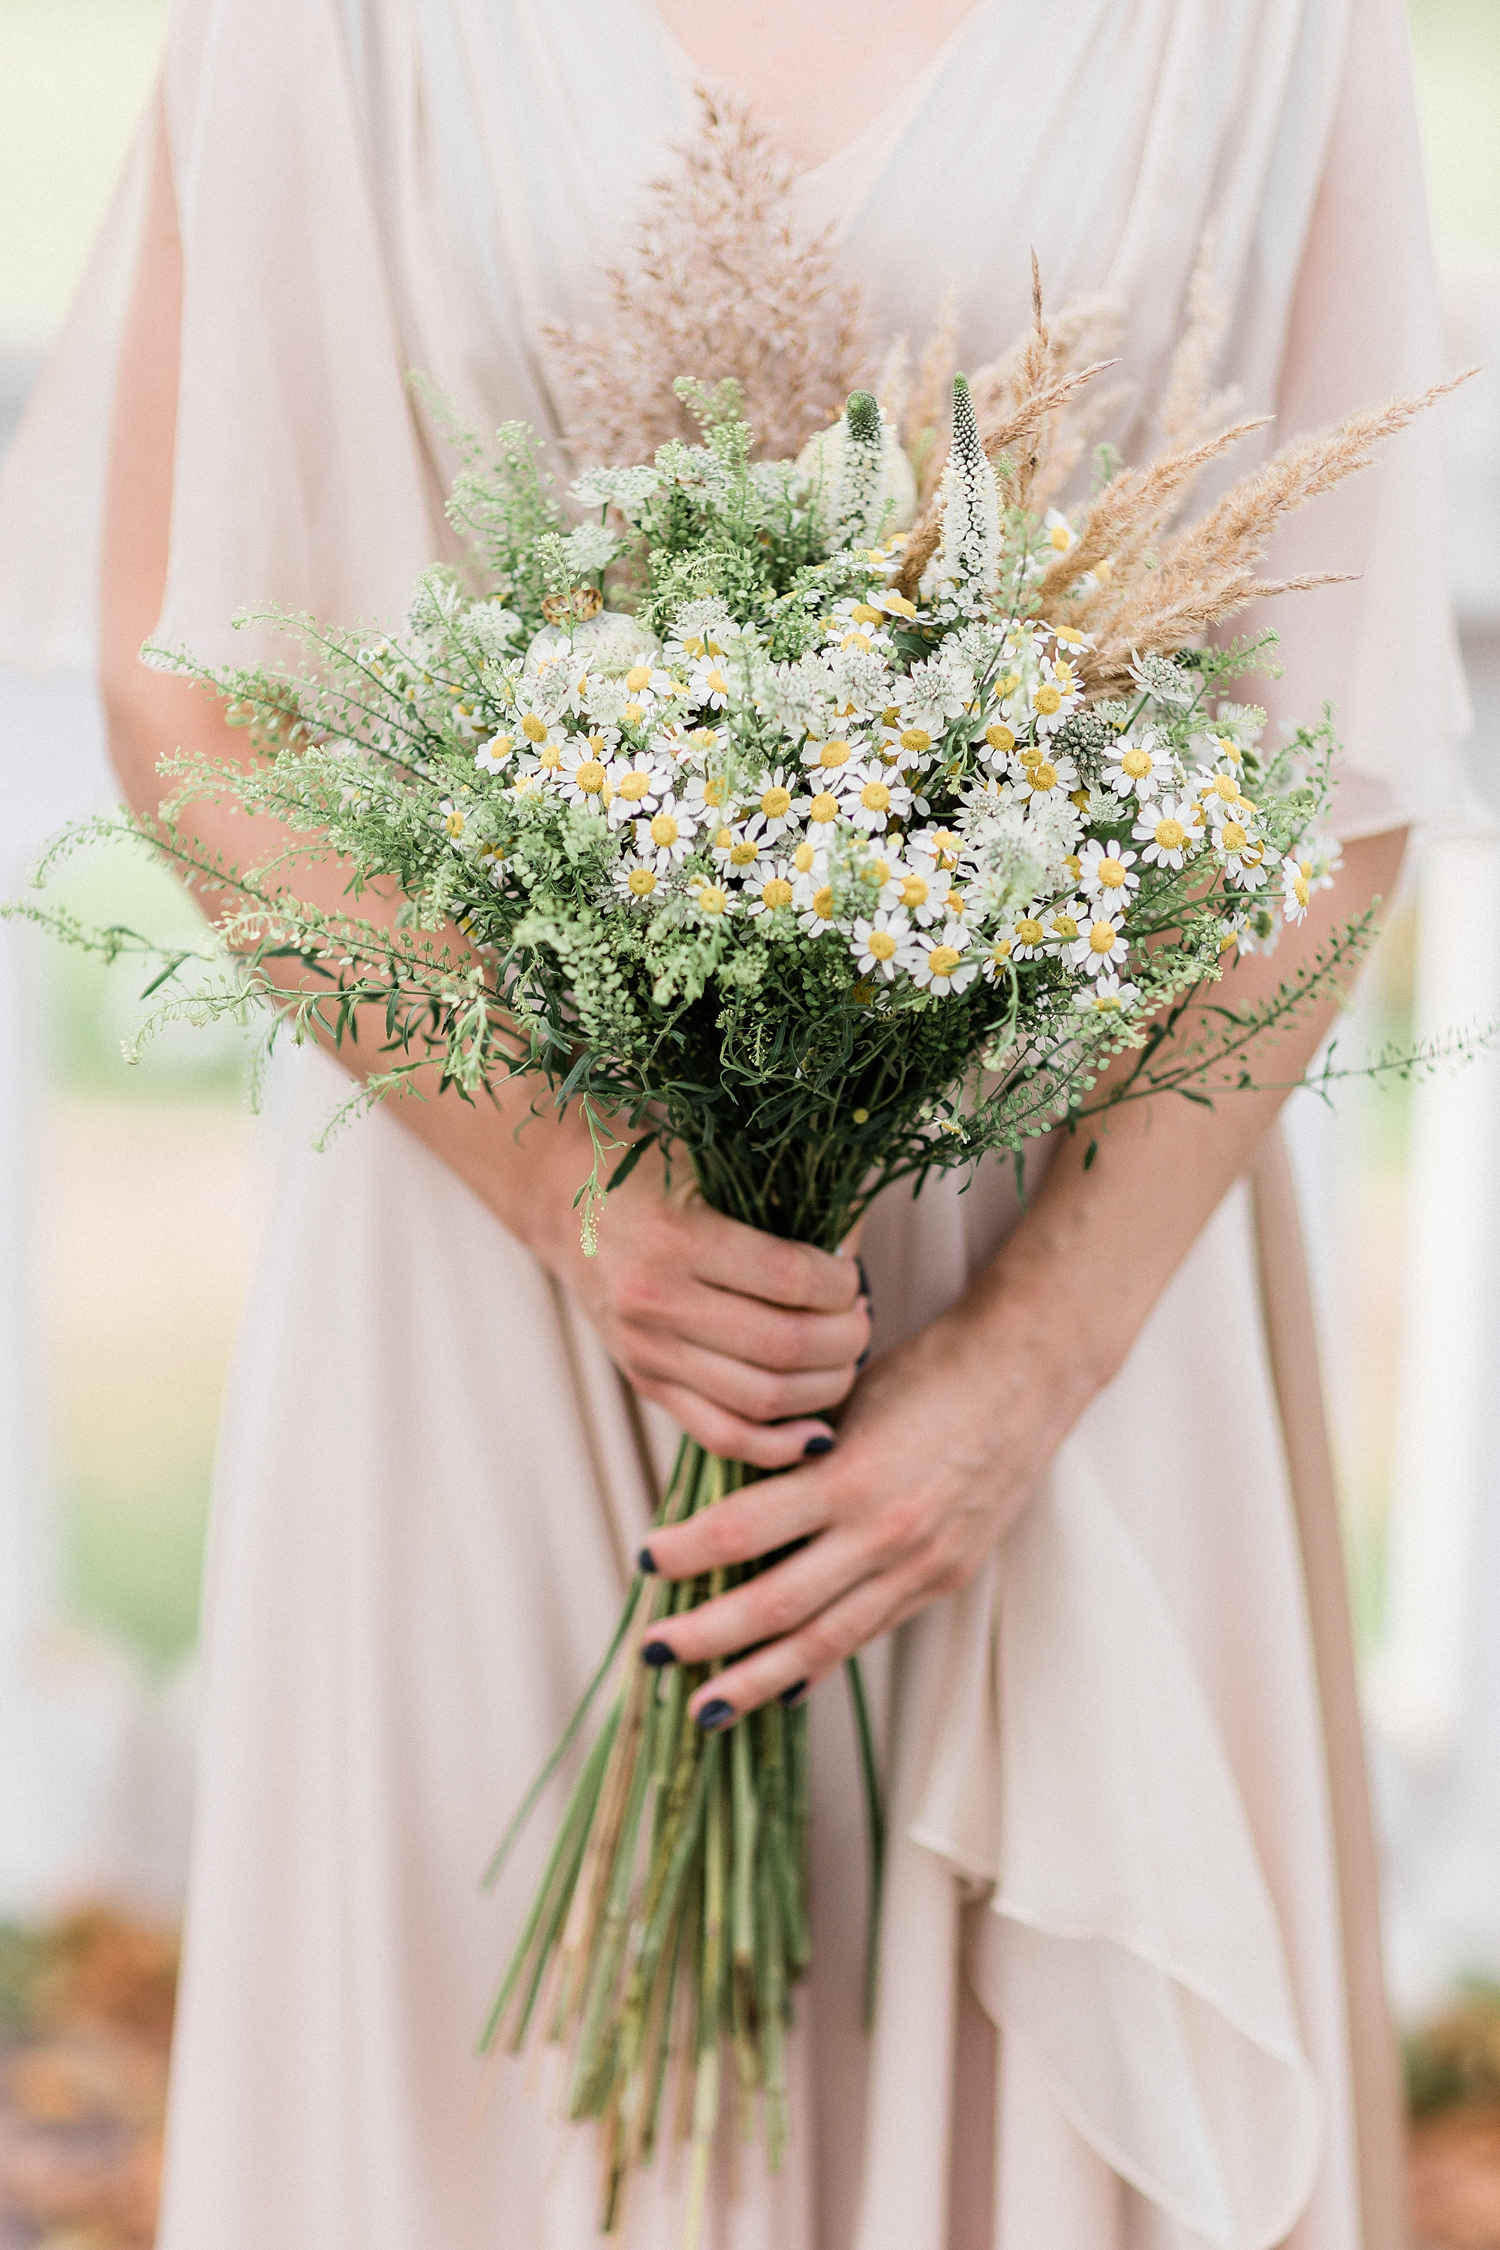 Bouquet of daisies, heather in white green and beige - photo by Jurgita Lukos Photography